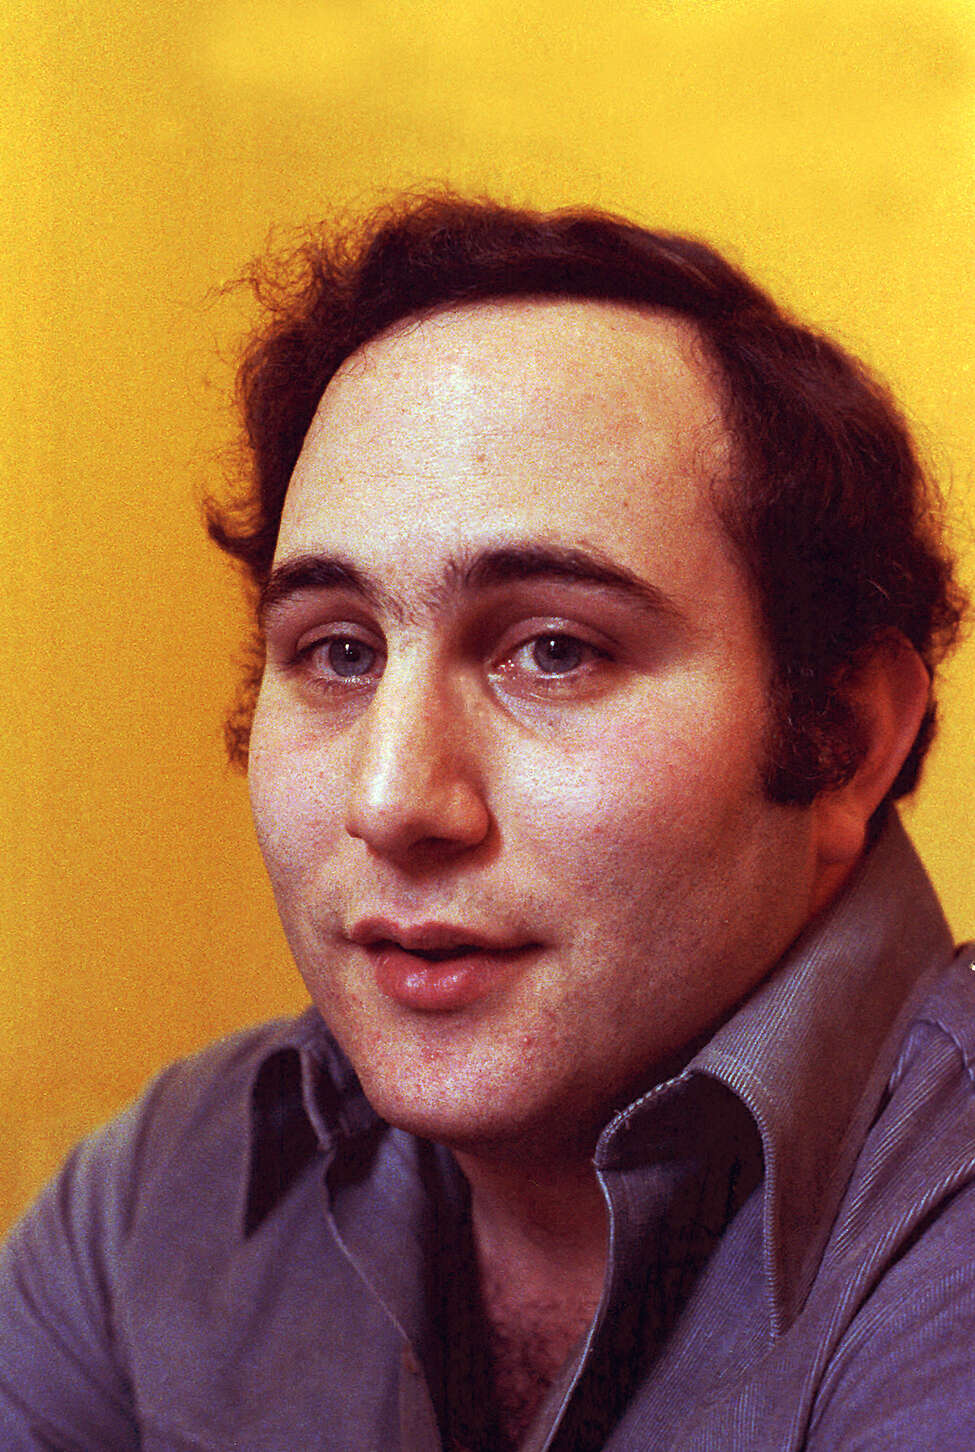 ** FILE ** Serial killer David Berkowitz, also known as